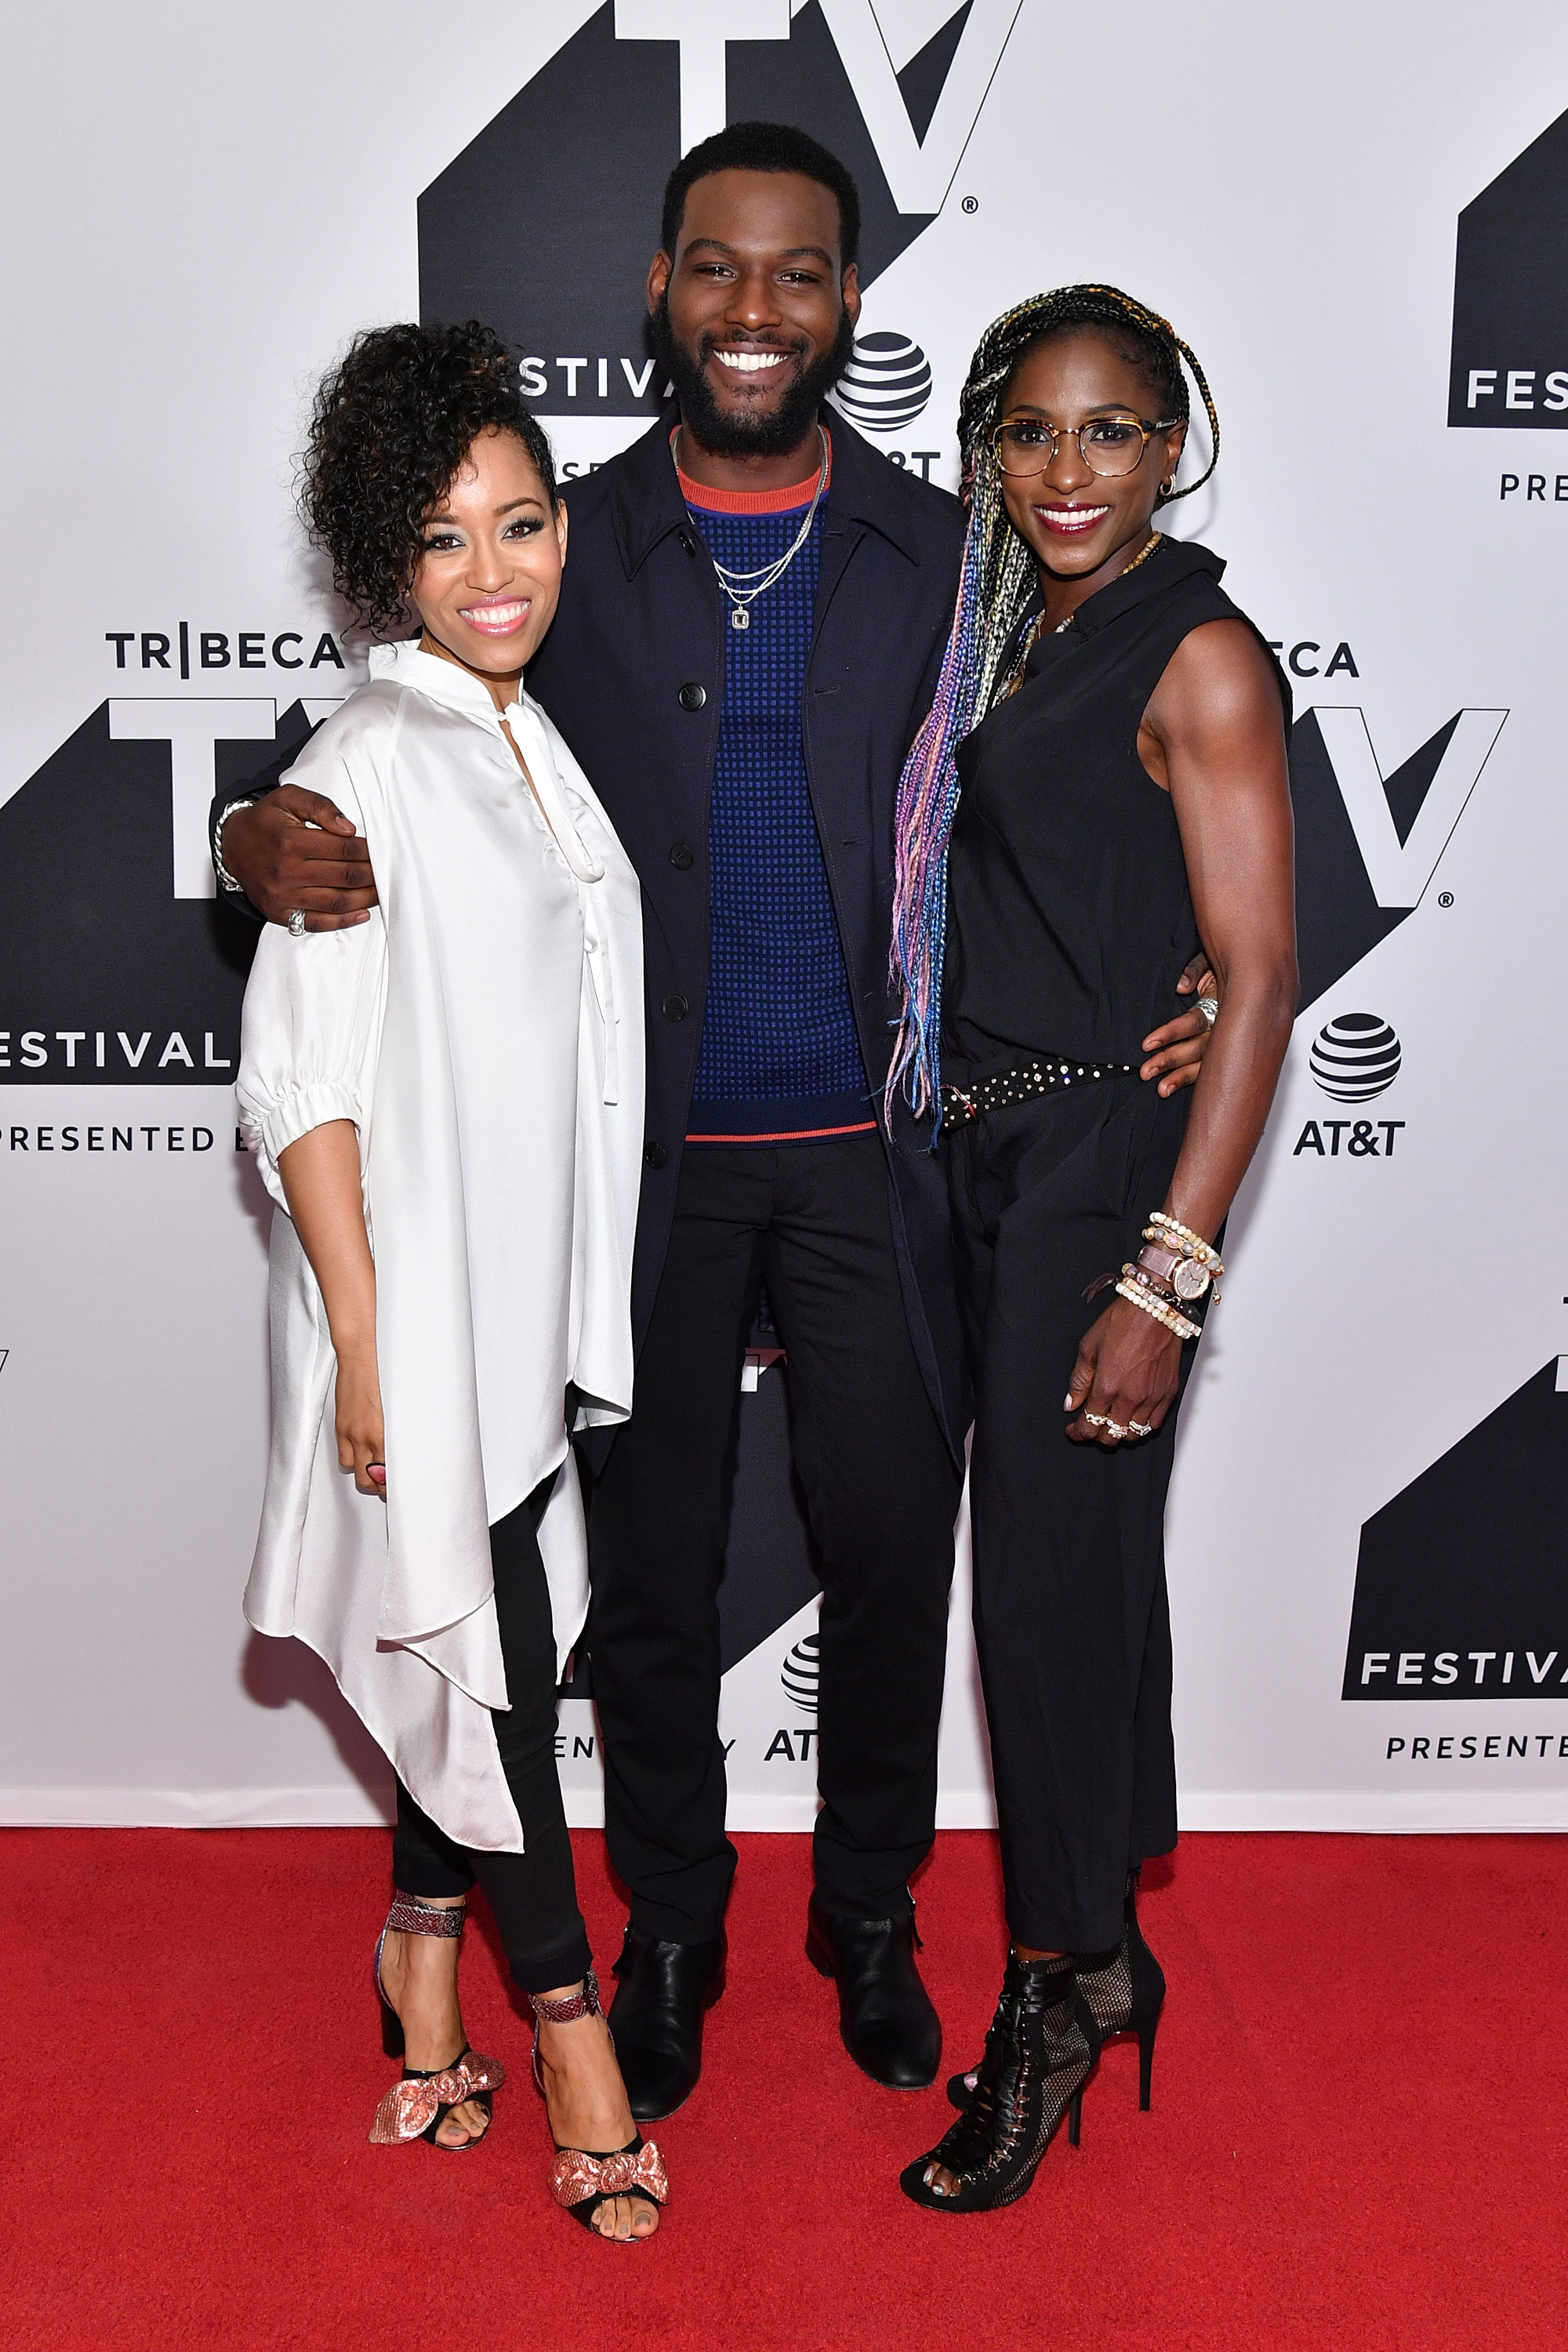 Dawn-Lyen Gardner, Kofi Siriboe and Rutina Wesley attend the Tribeca TV Festival mid-season premiere of Queen Sugar at Cinepolis Chelsea on September 24, 2017 in New York City. (Photo by Dia DipasupilGetty Images.jpg